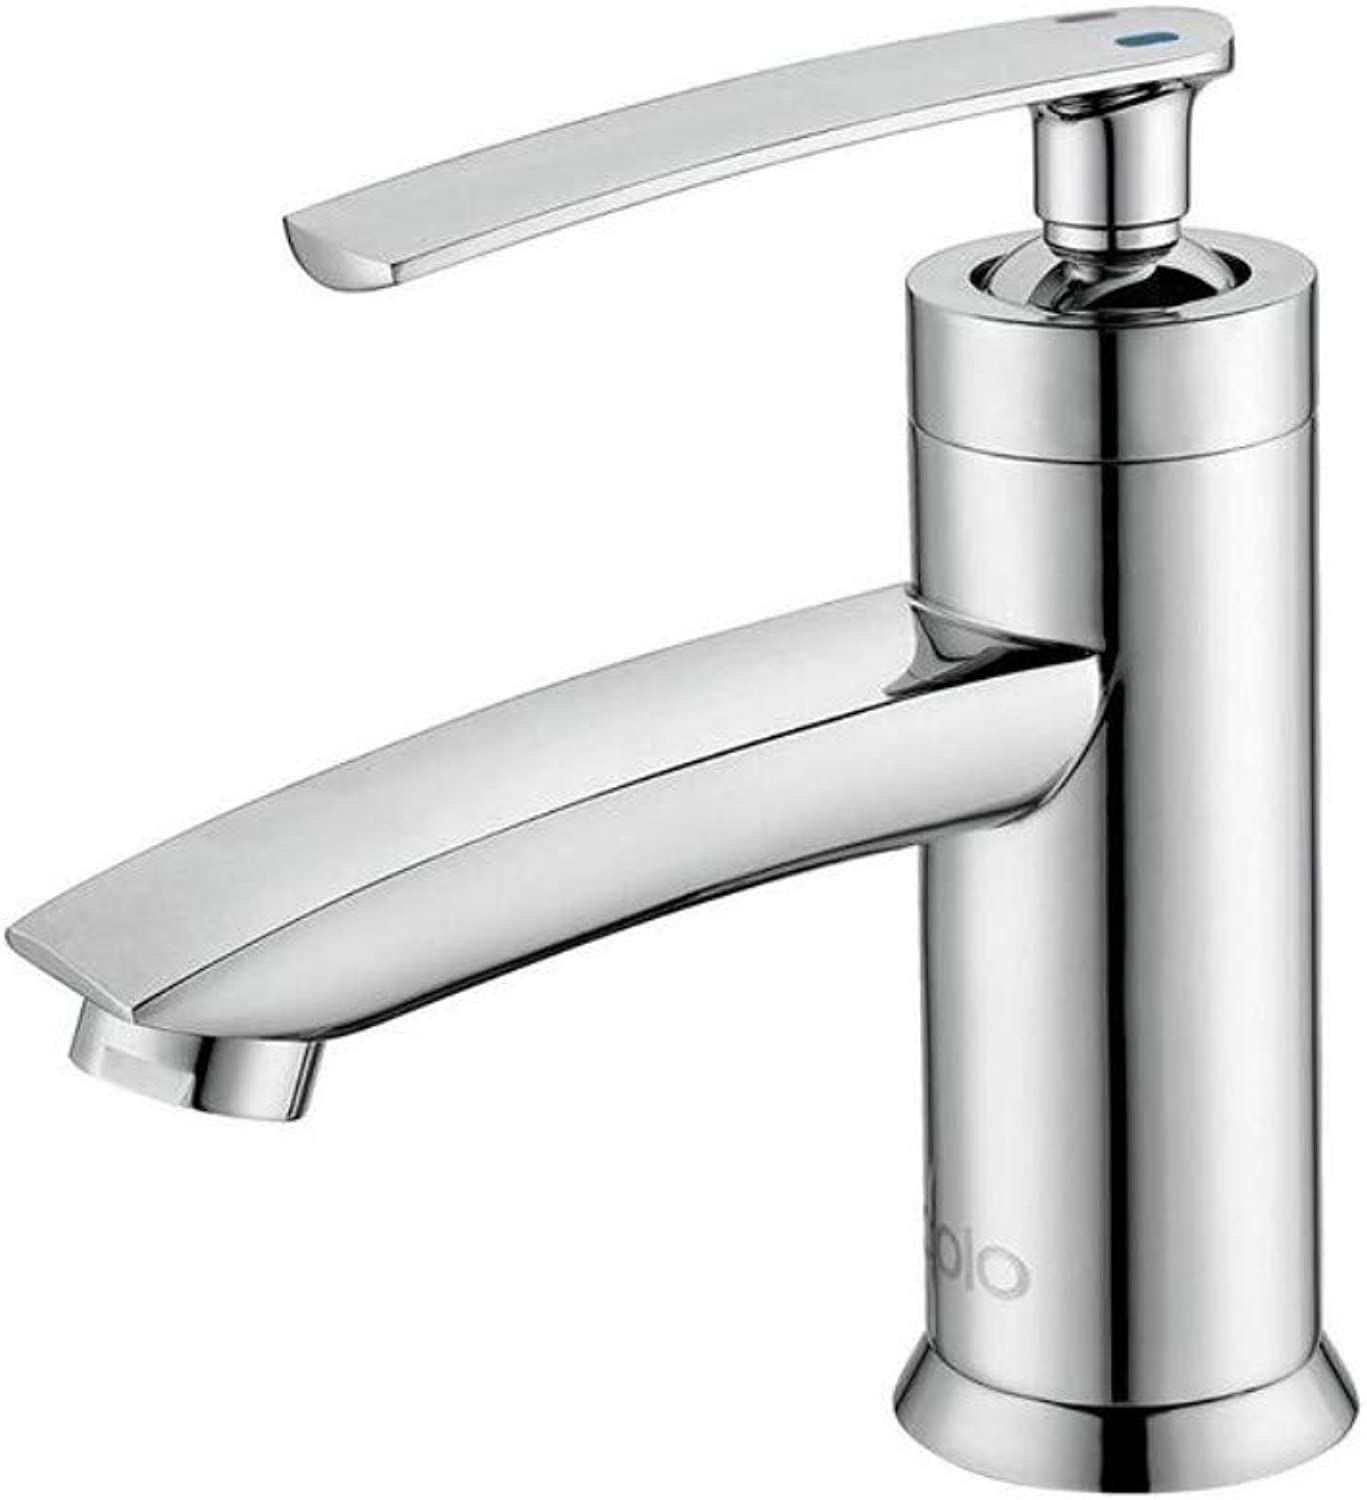 Mixer Basin Taps Bathroom Basin Sink Tap Bathroom Faucet Brass Single Handle Single Hole Hot and Cold Water Cloakroom